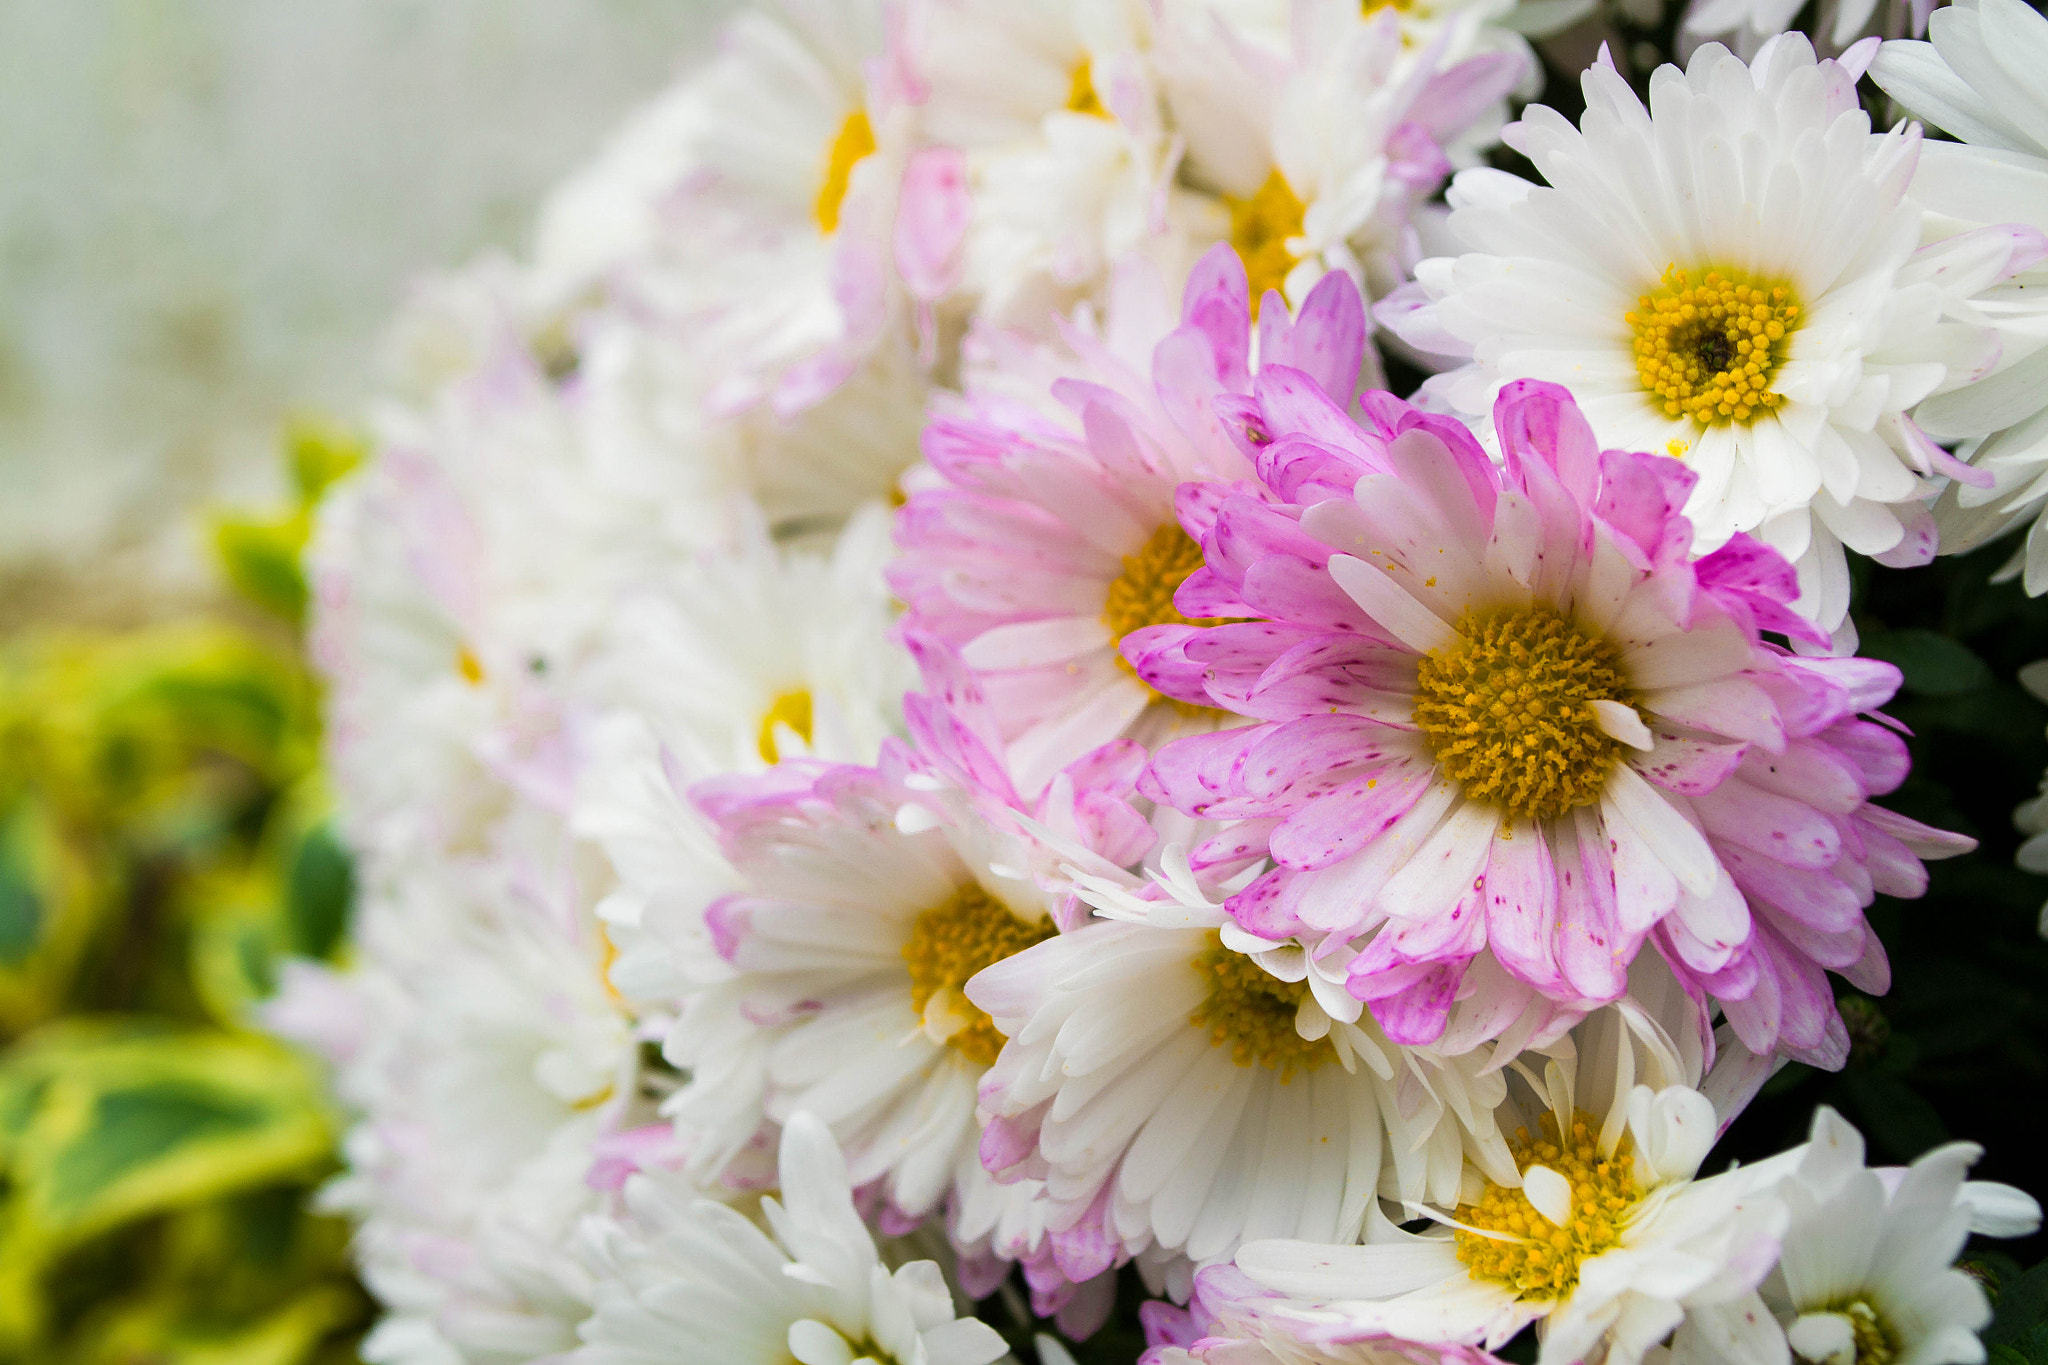 Photograph Flowers by Dexon Dee on 500px